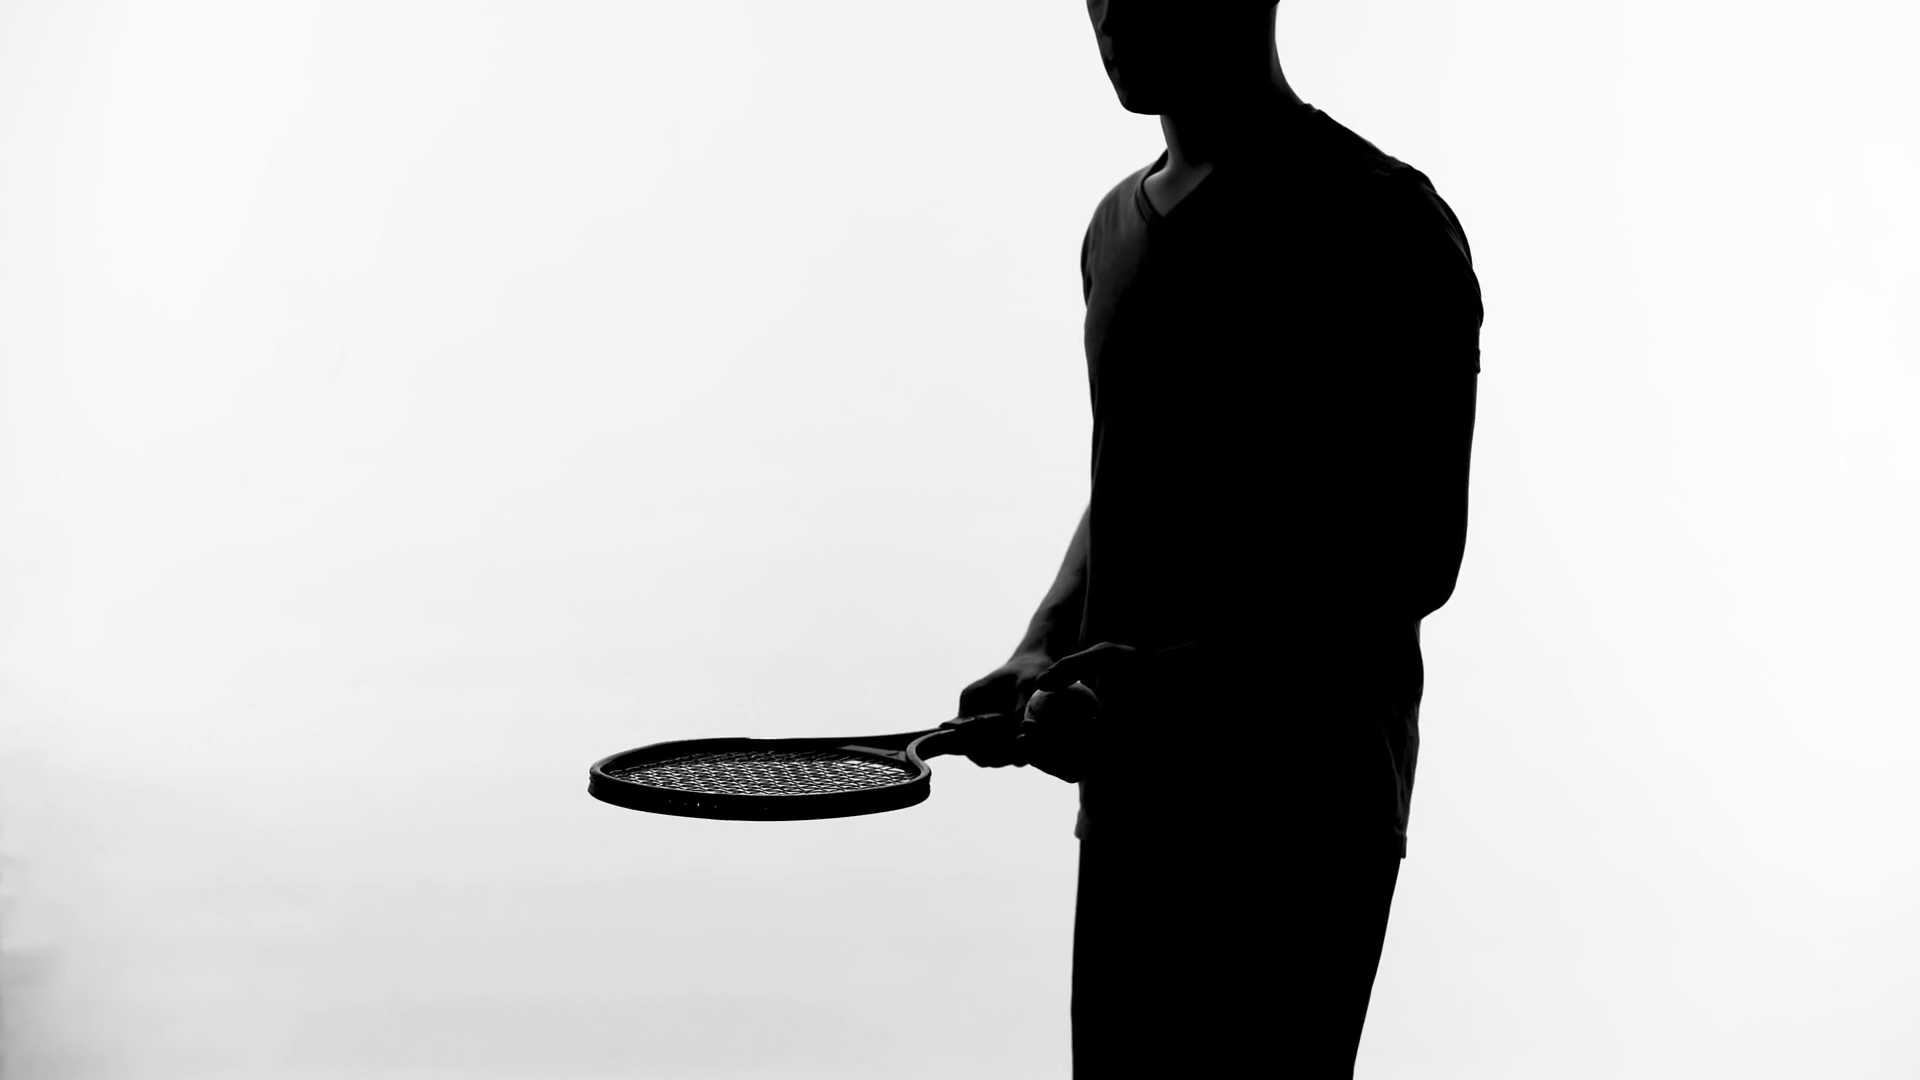 1920x1080 Tennis Player Silhouette Practicing Reaction, Bouncing Ball